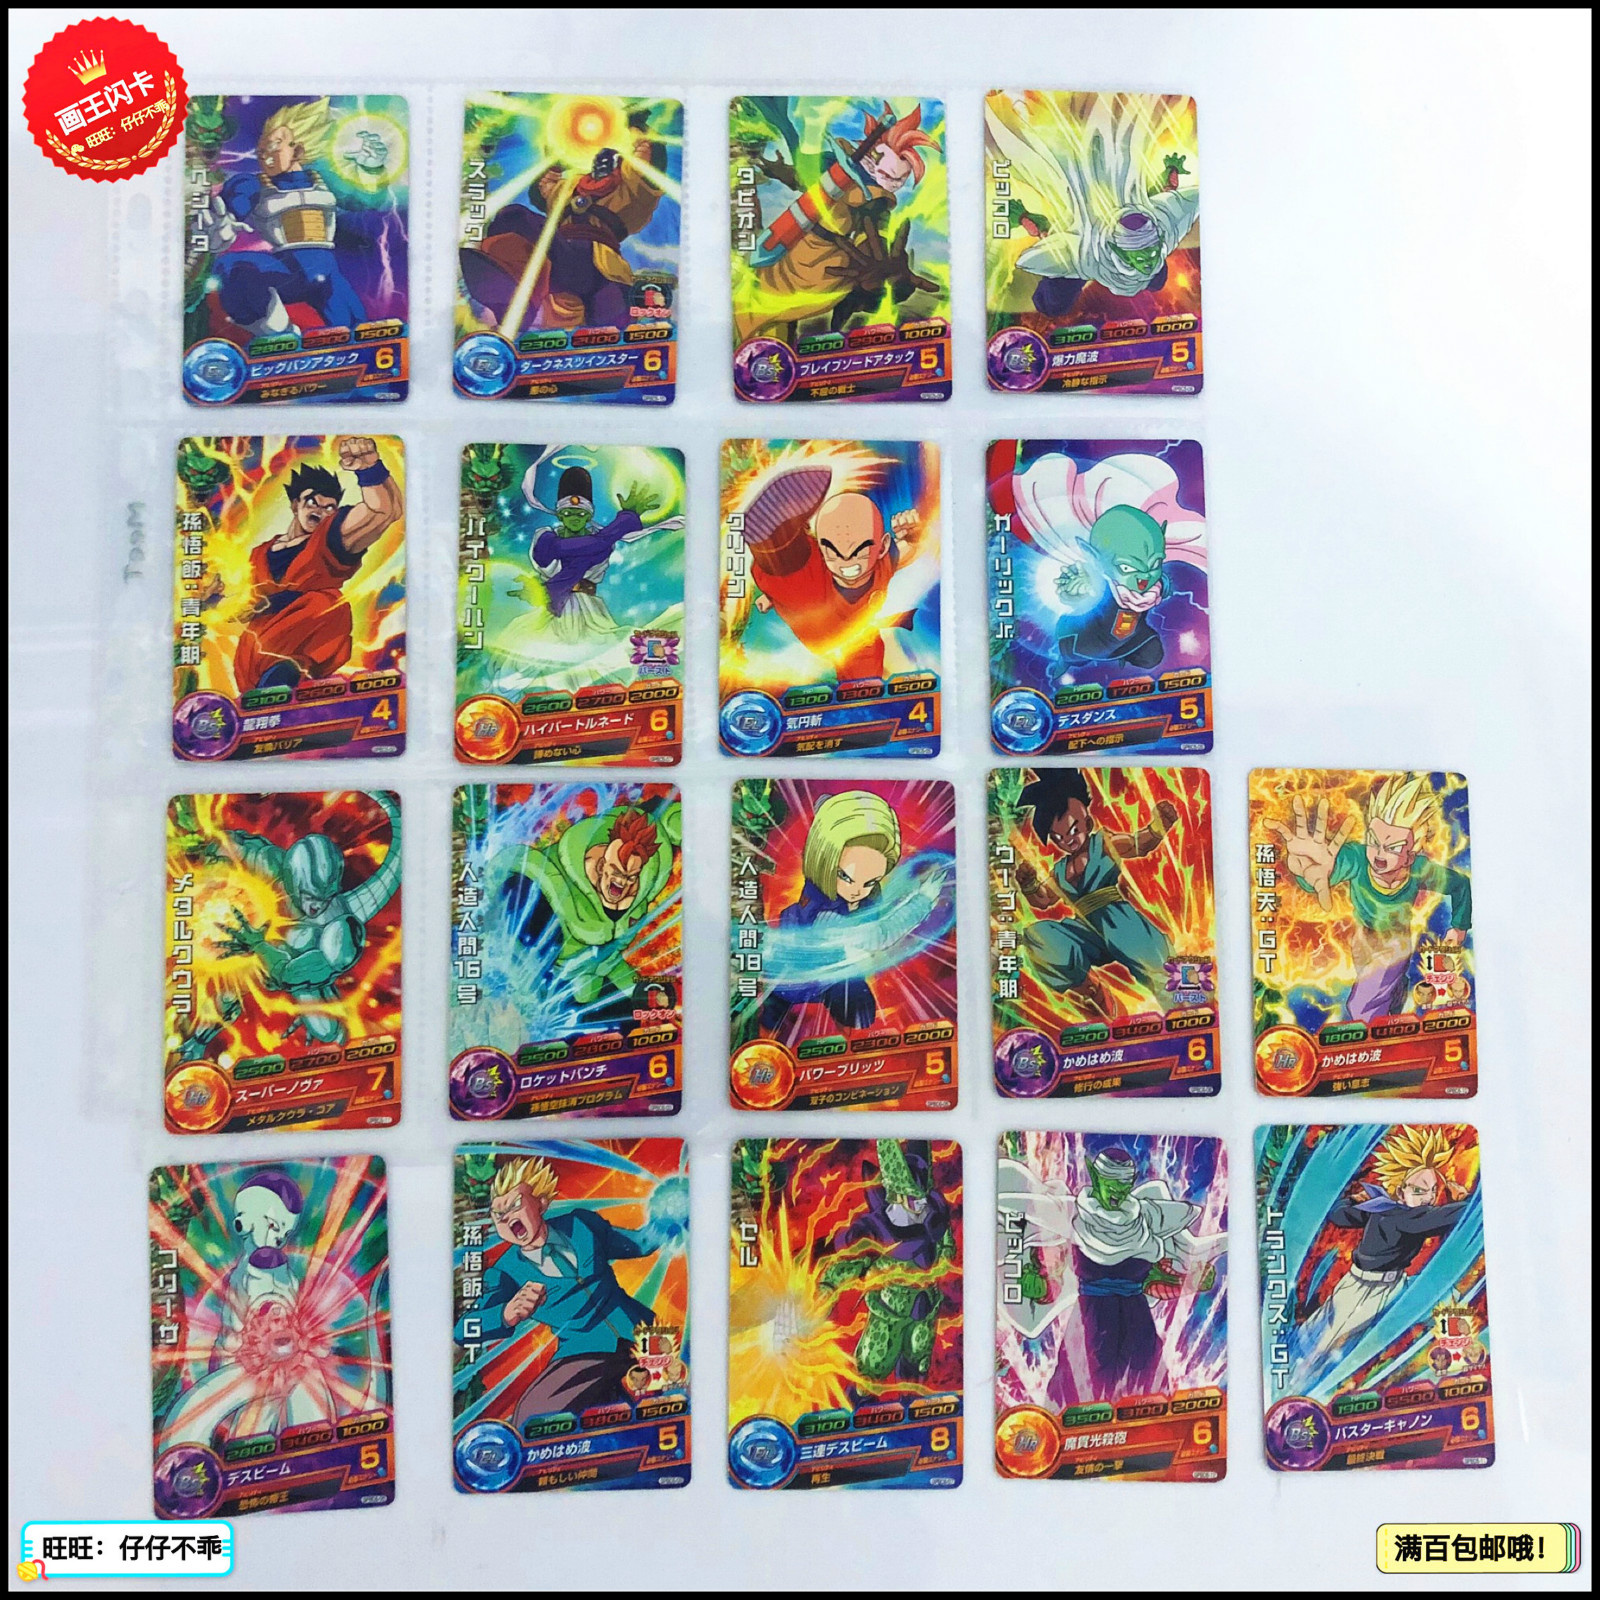 Japan Original Dragon Ball Hero Card GPBC5 6 Goku Toys Hobbies Collectibles Game Collection Anime Cards